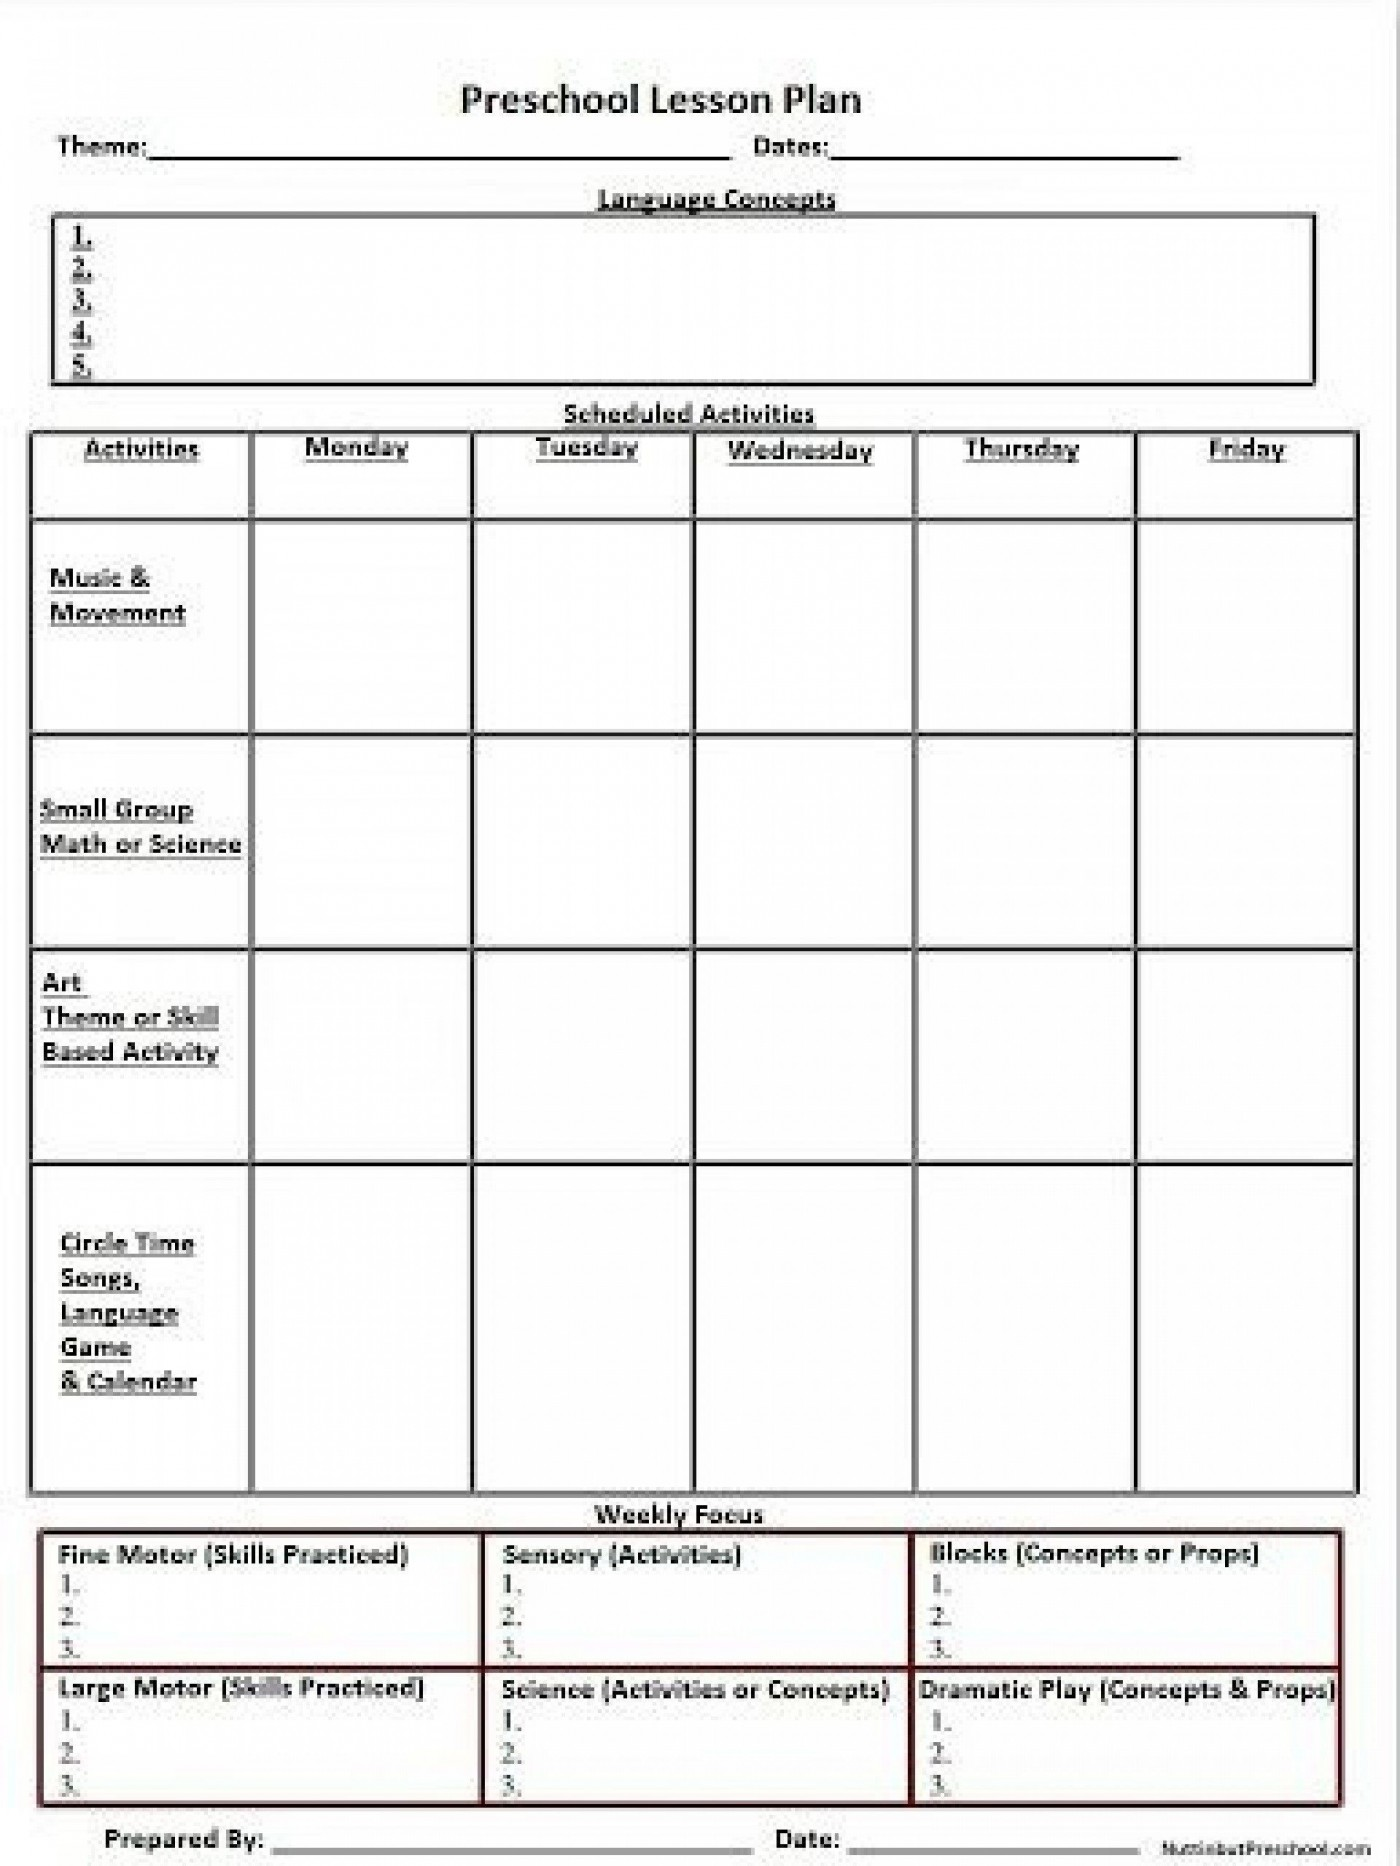 007 Shocking Weekly Lesson Plan Template High School Def  Free For Math Example History1400